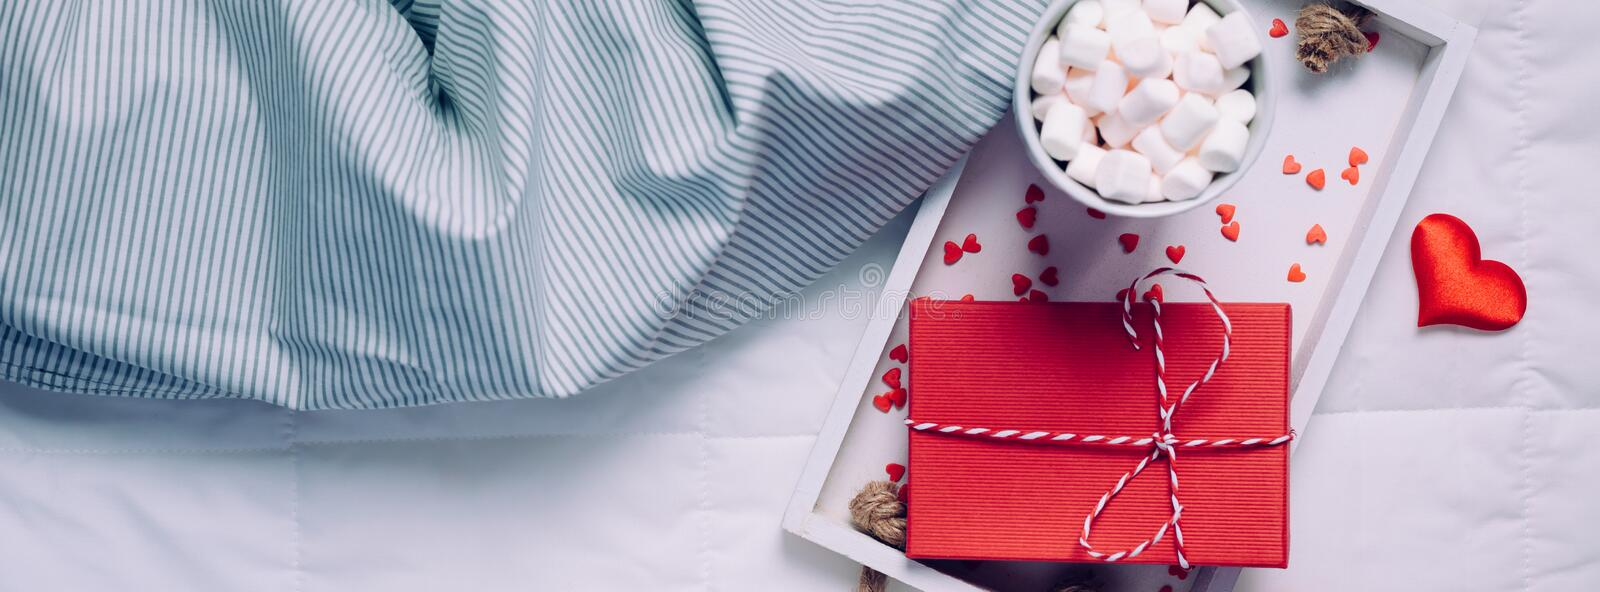 Romantic breakfast in bed. Valentine concept stock photography